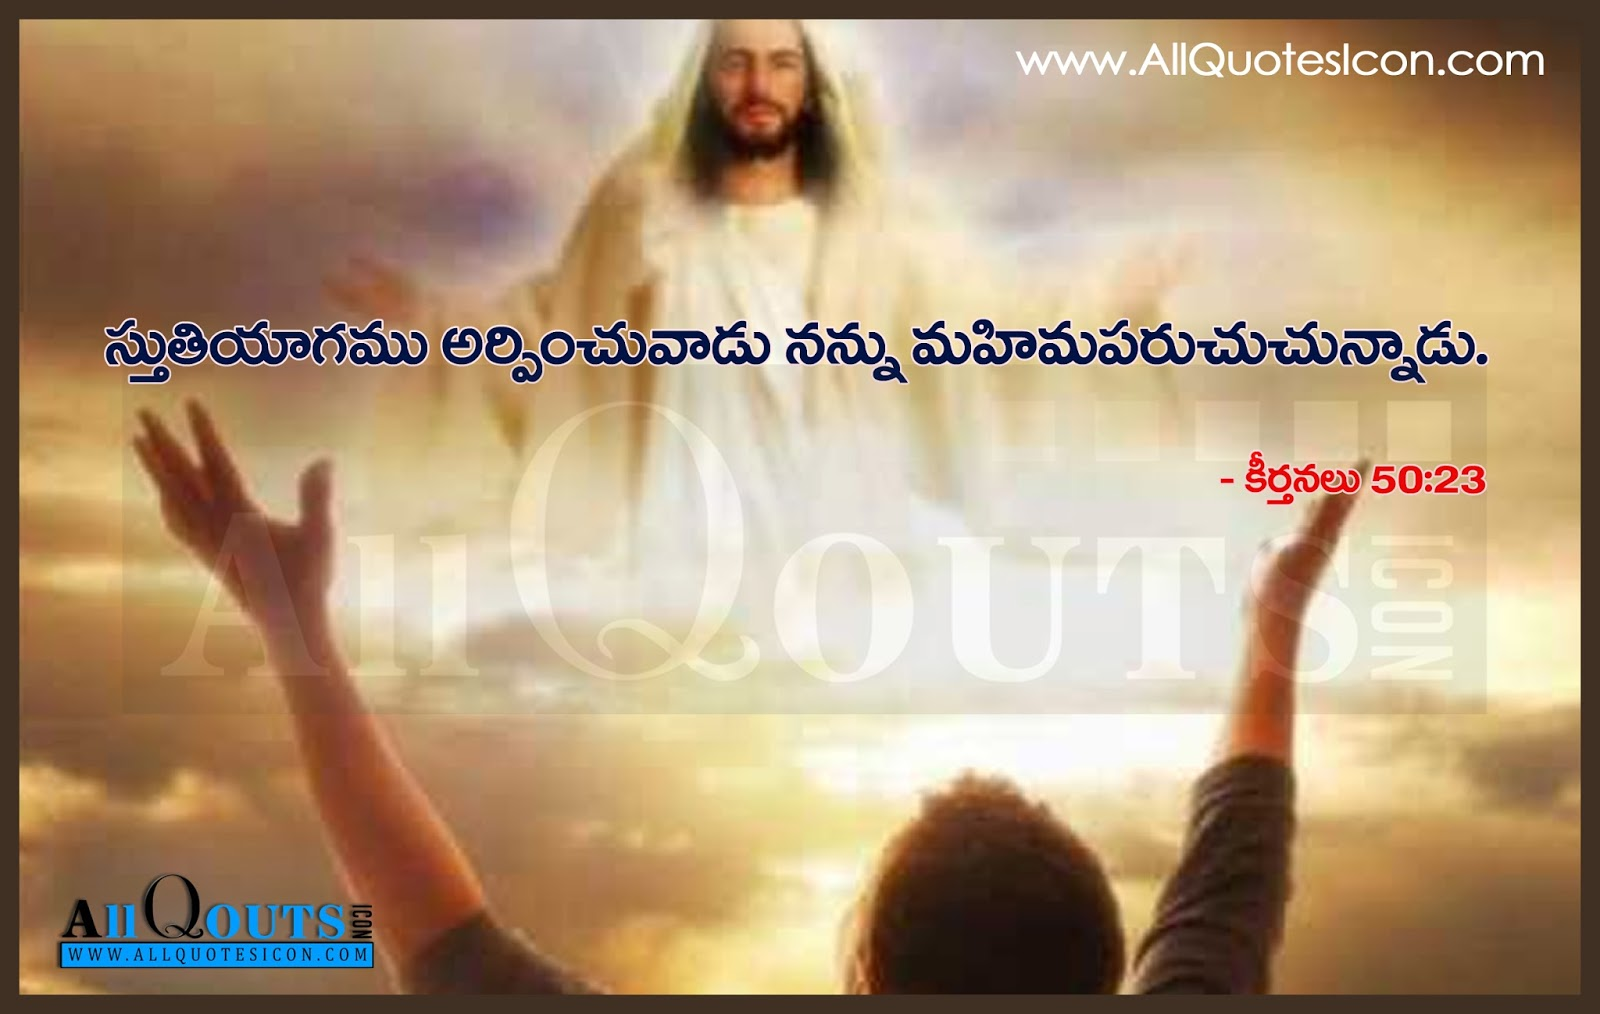 Jesus Inspirational Quotes Jesus Quotes In Telugu Hd Wallpapers Top Bible Verses Telugu